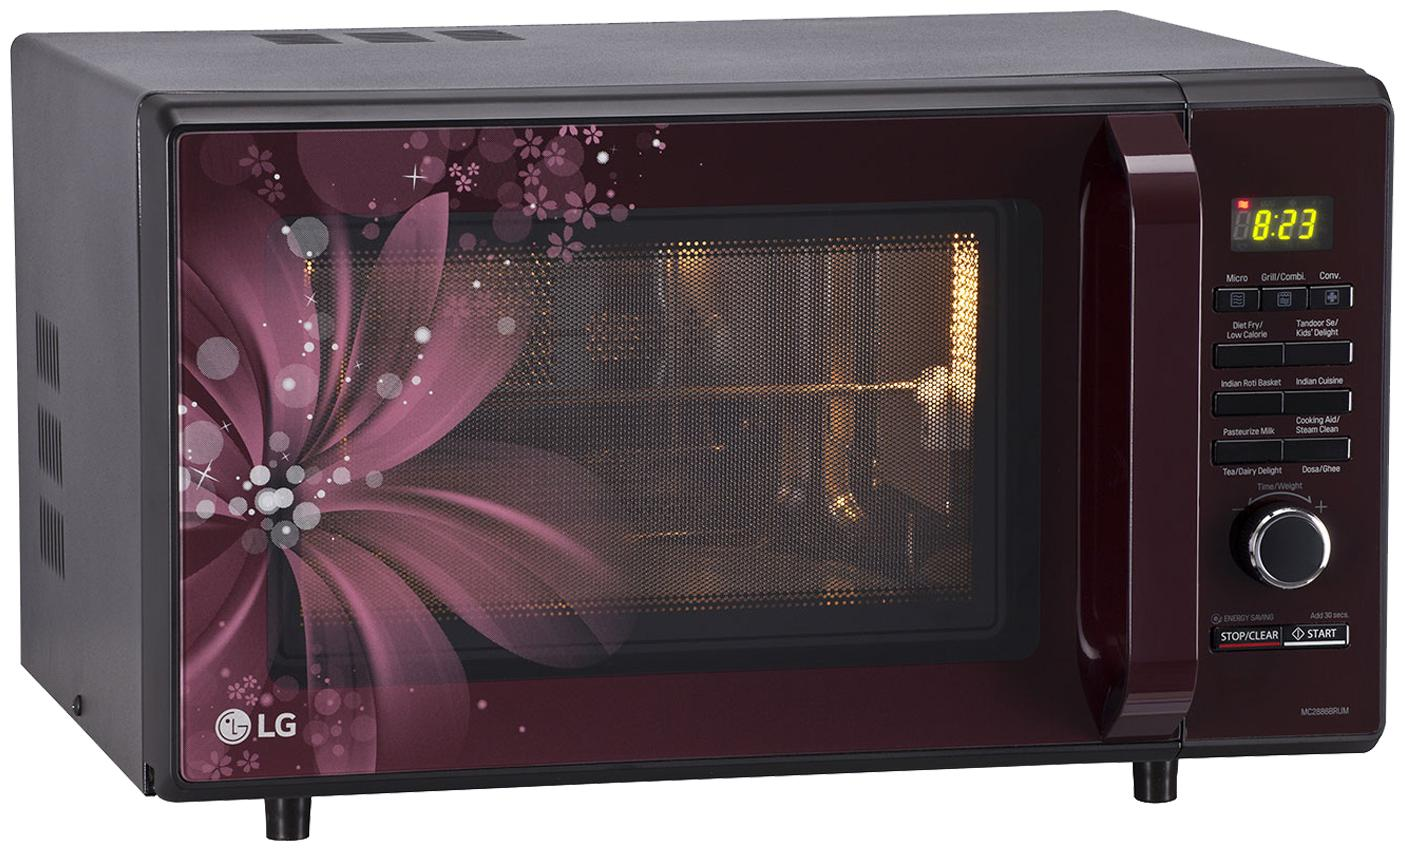 lg 28 l convection microwave oven mc2886brum black and maroon